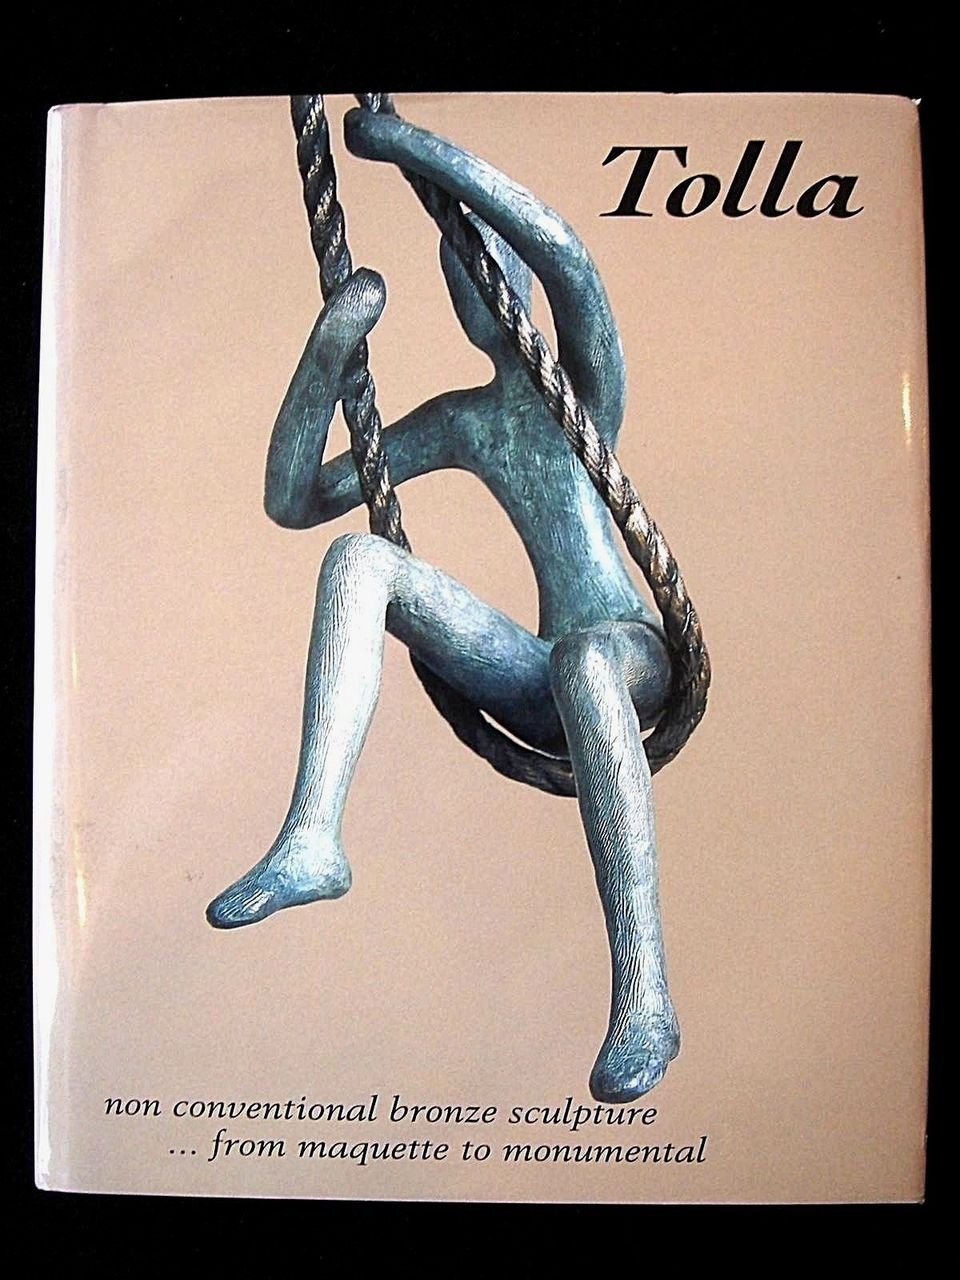 TOLLA: NON CONVENTIONAL BRONZE SCULPTURE from Maquette to Monumental, by Veronique Botineau Tolla - 2001 [SIGNED]